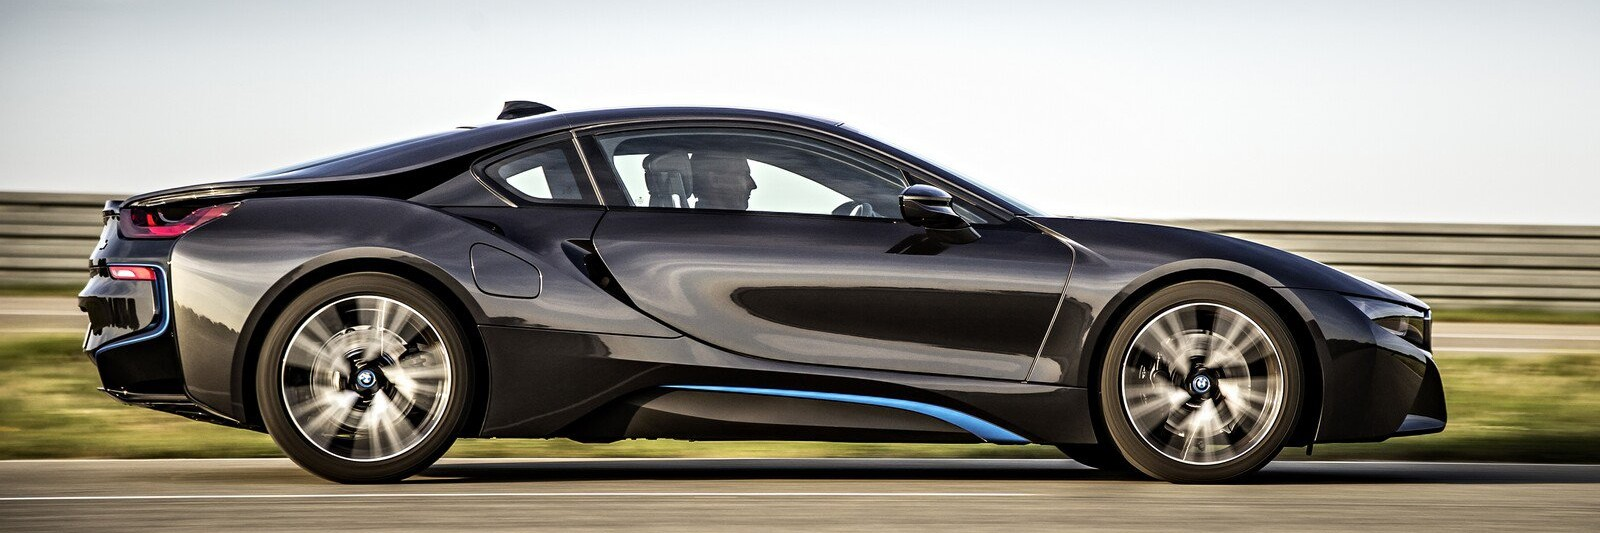 bmw i8 interior production. according bmw i8 interior production